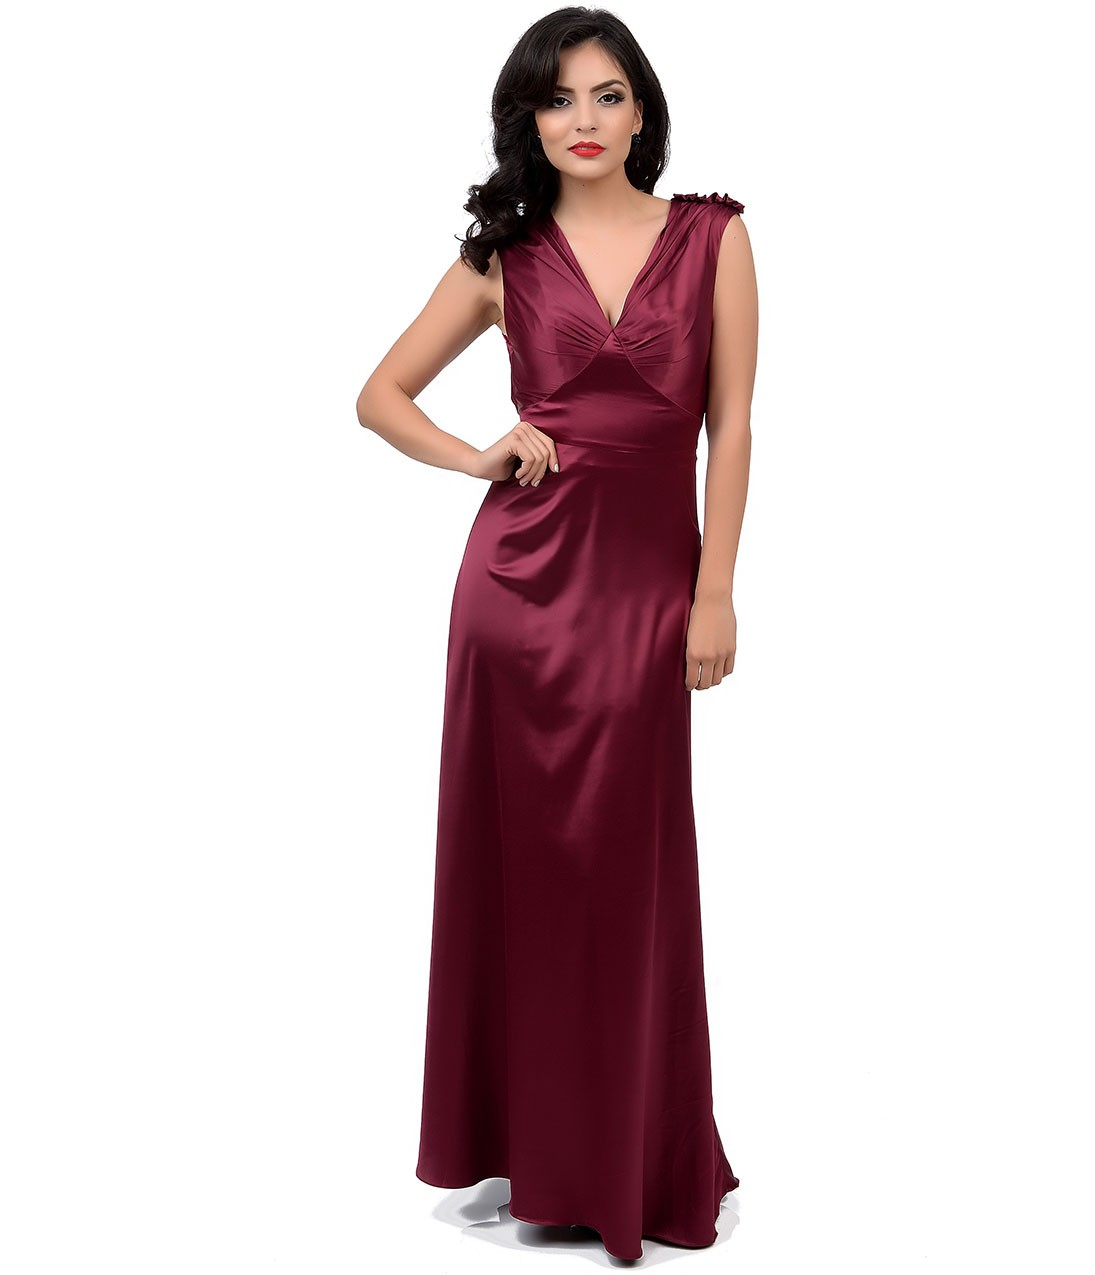 Live out your Oscar dreams in a red-carpet worthy gown credit: Unique Vintage